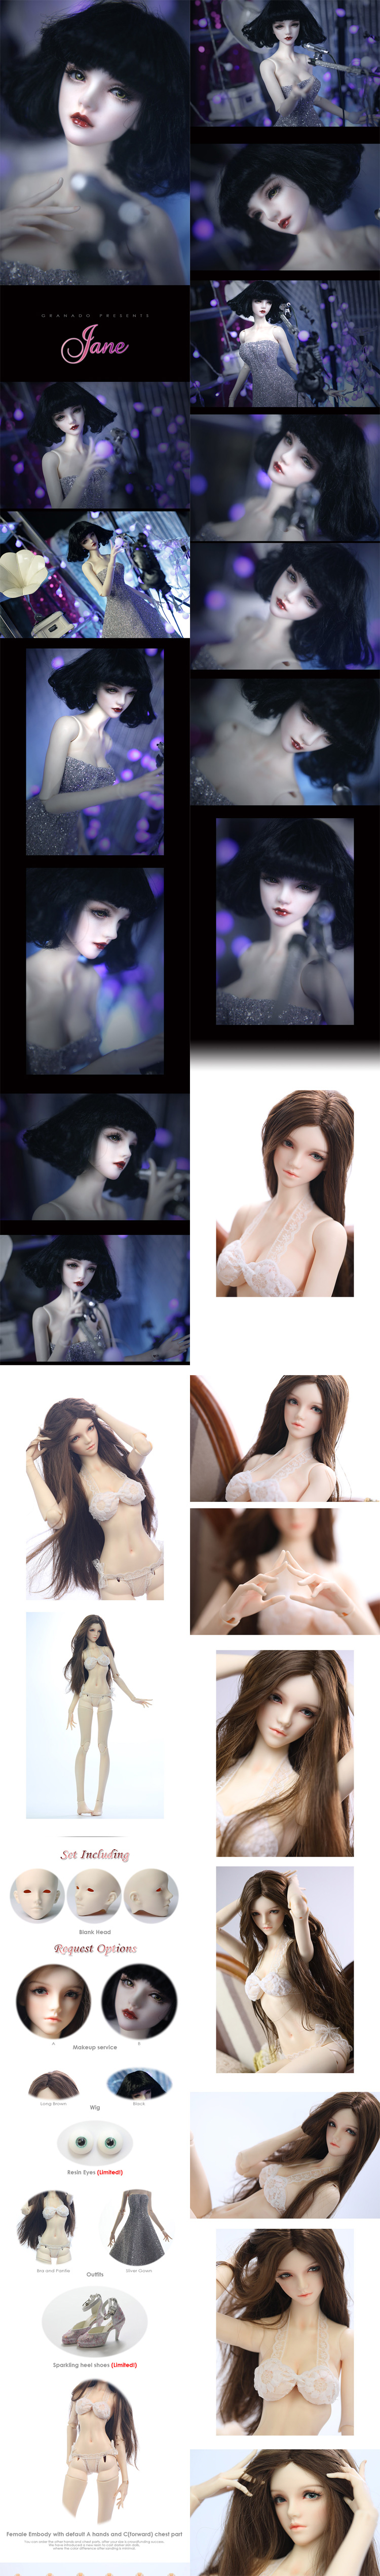 BJD Jane Jointed doll